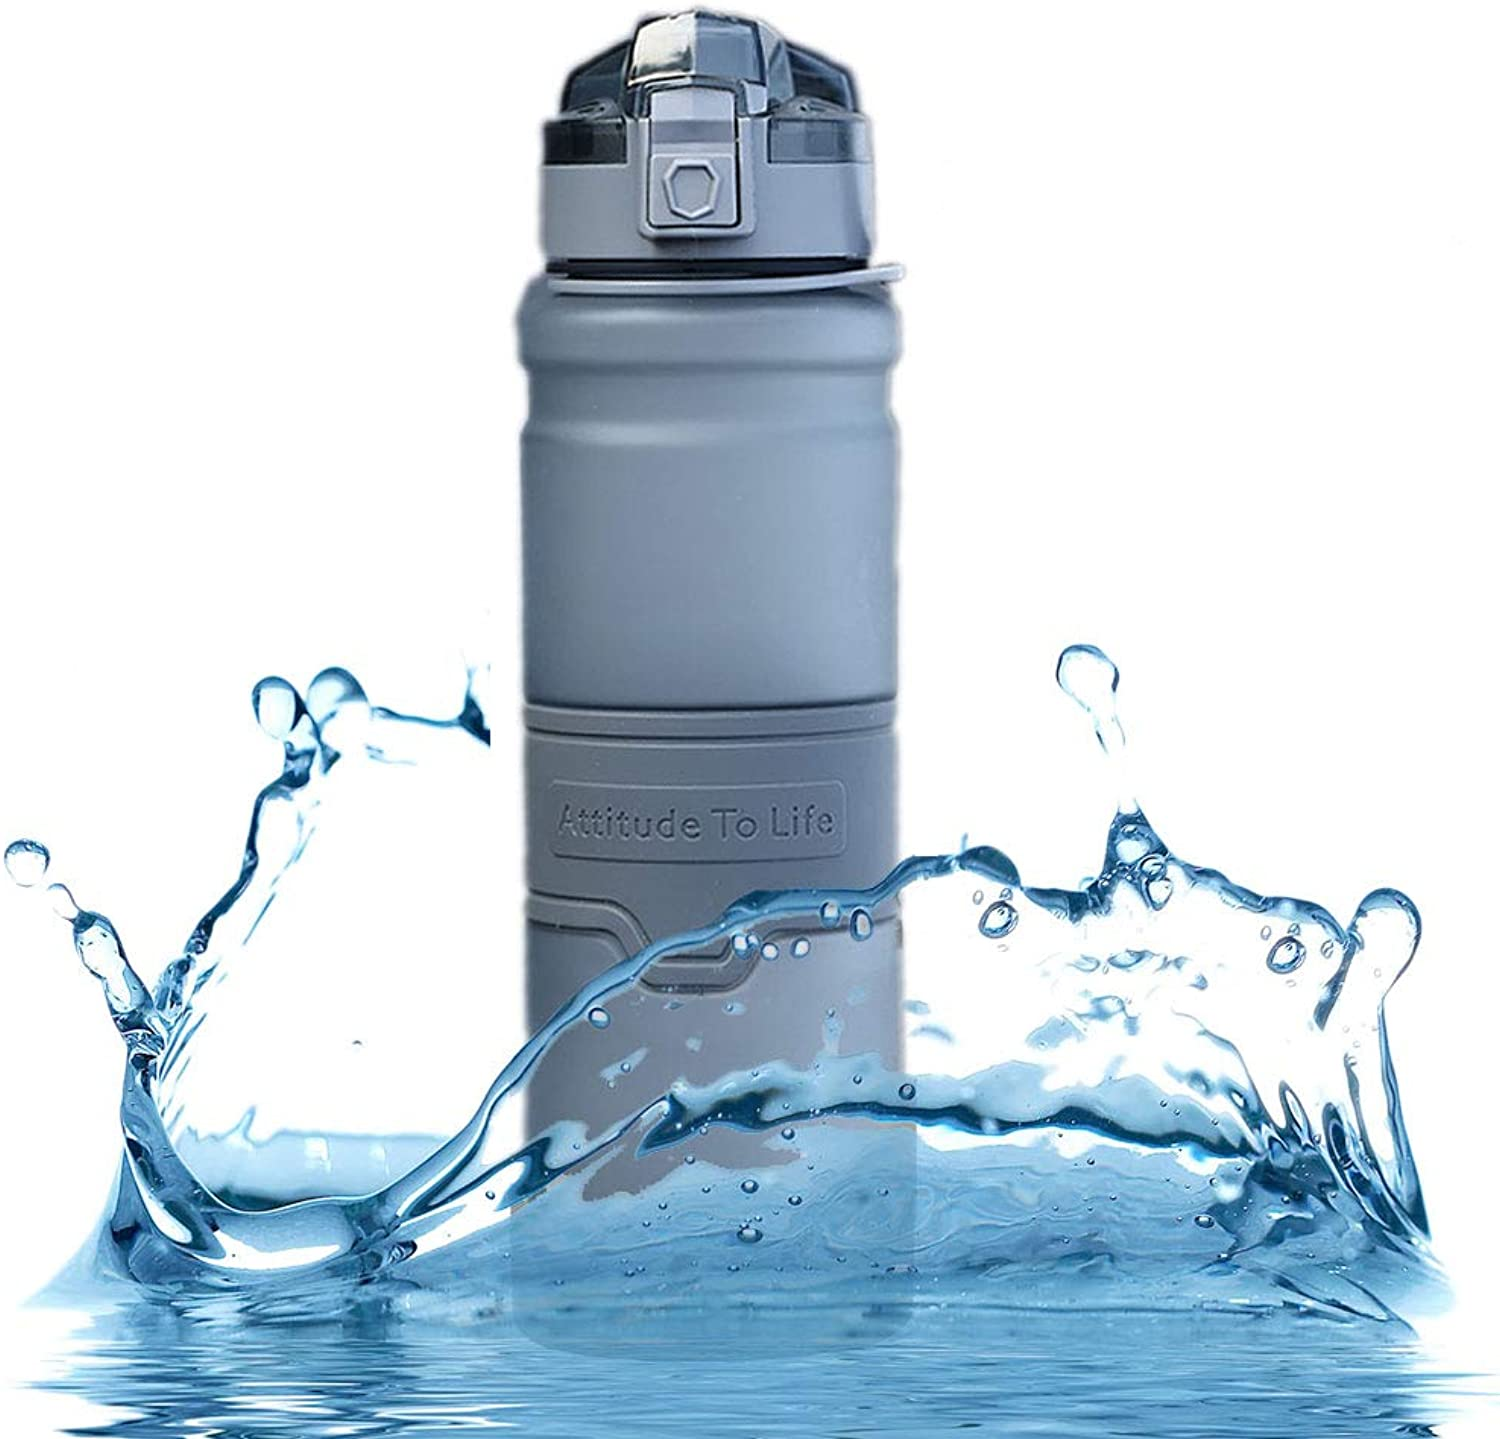 Leakproof Sport Water Bottle 1 Litre, Non Toxic Plastic Cup, Fast Water Flow, with Filter, Wide Mouth and Secure Locking Lid, for Running, Gym, Yoga, Outdoors and Camping